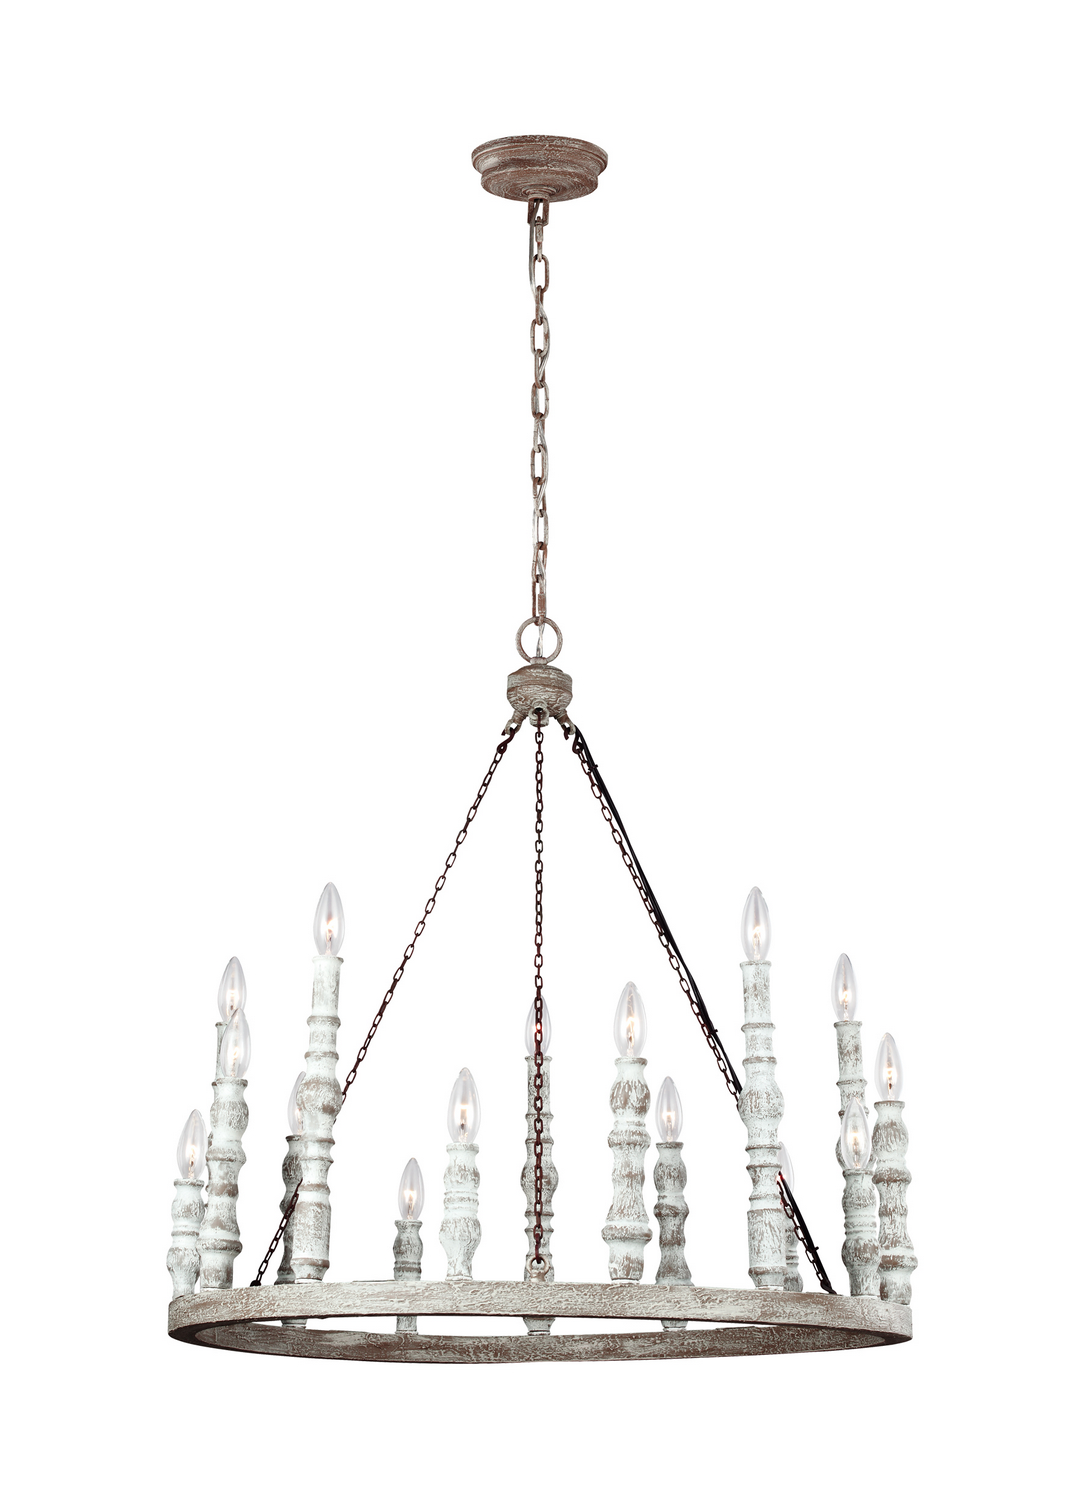 15 Light Chandelier from the Norridge collection by Feiss F314215DFBDWH